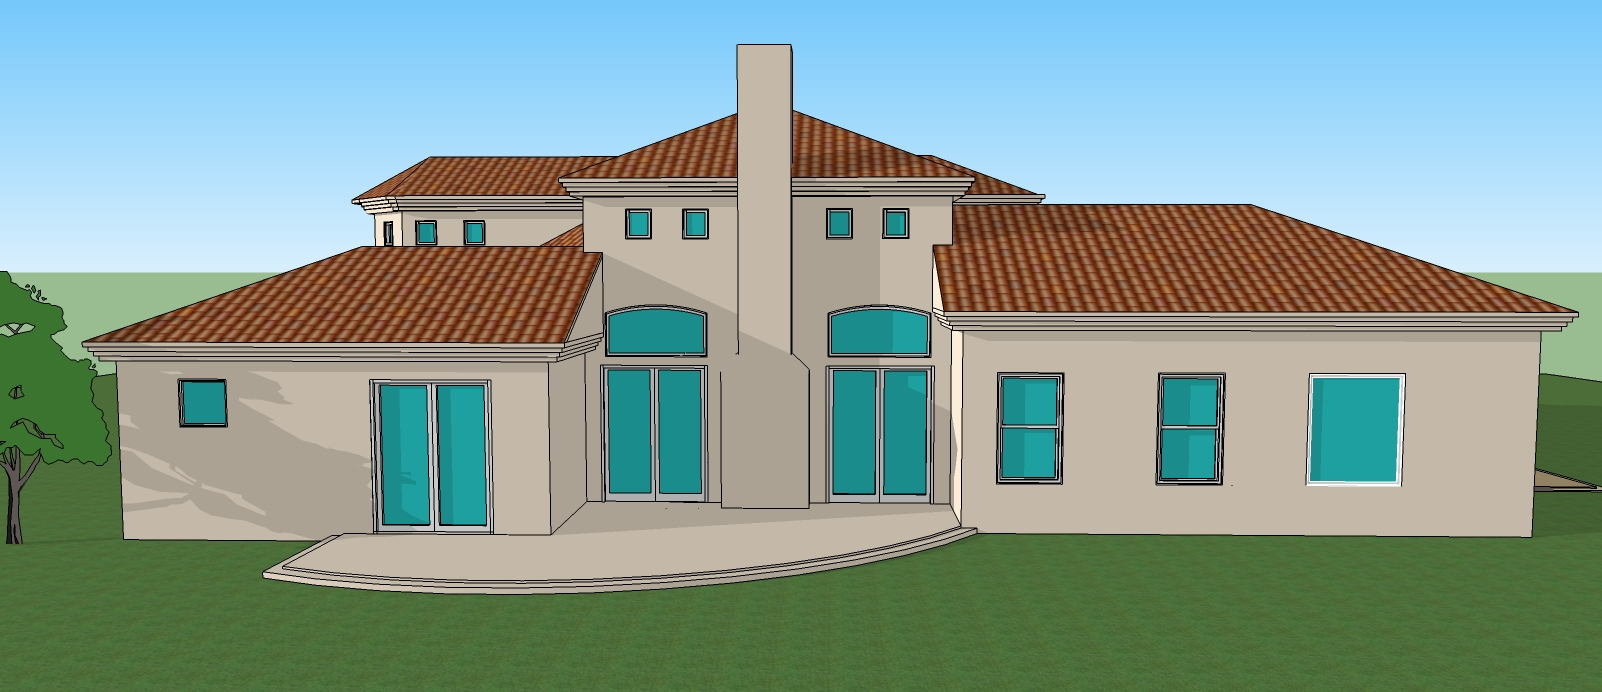 3d cad house design – House design ideas